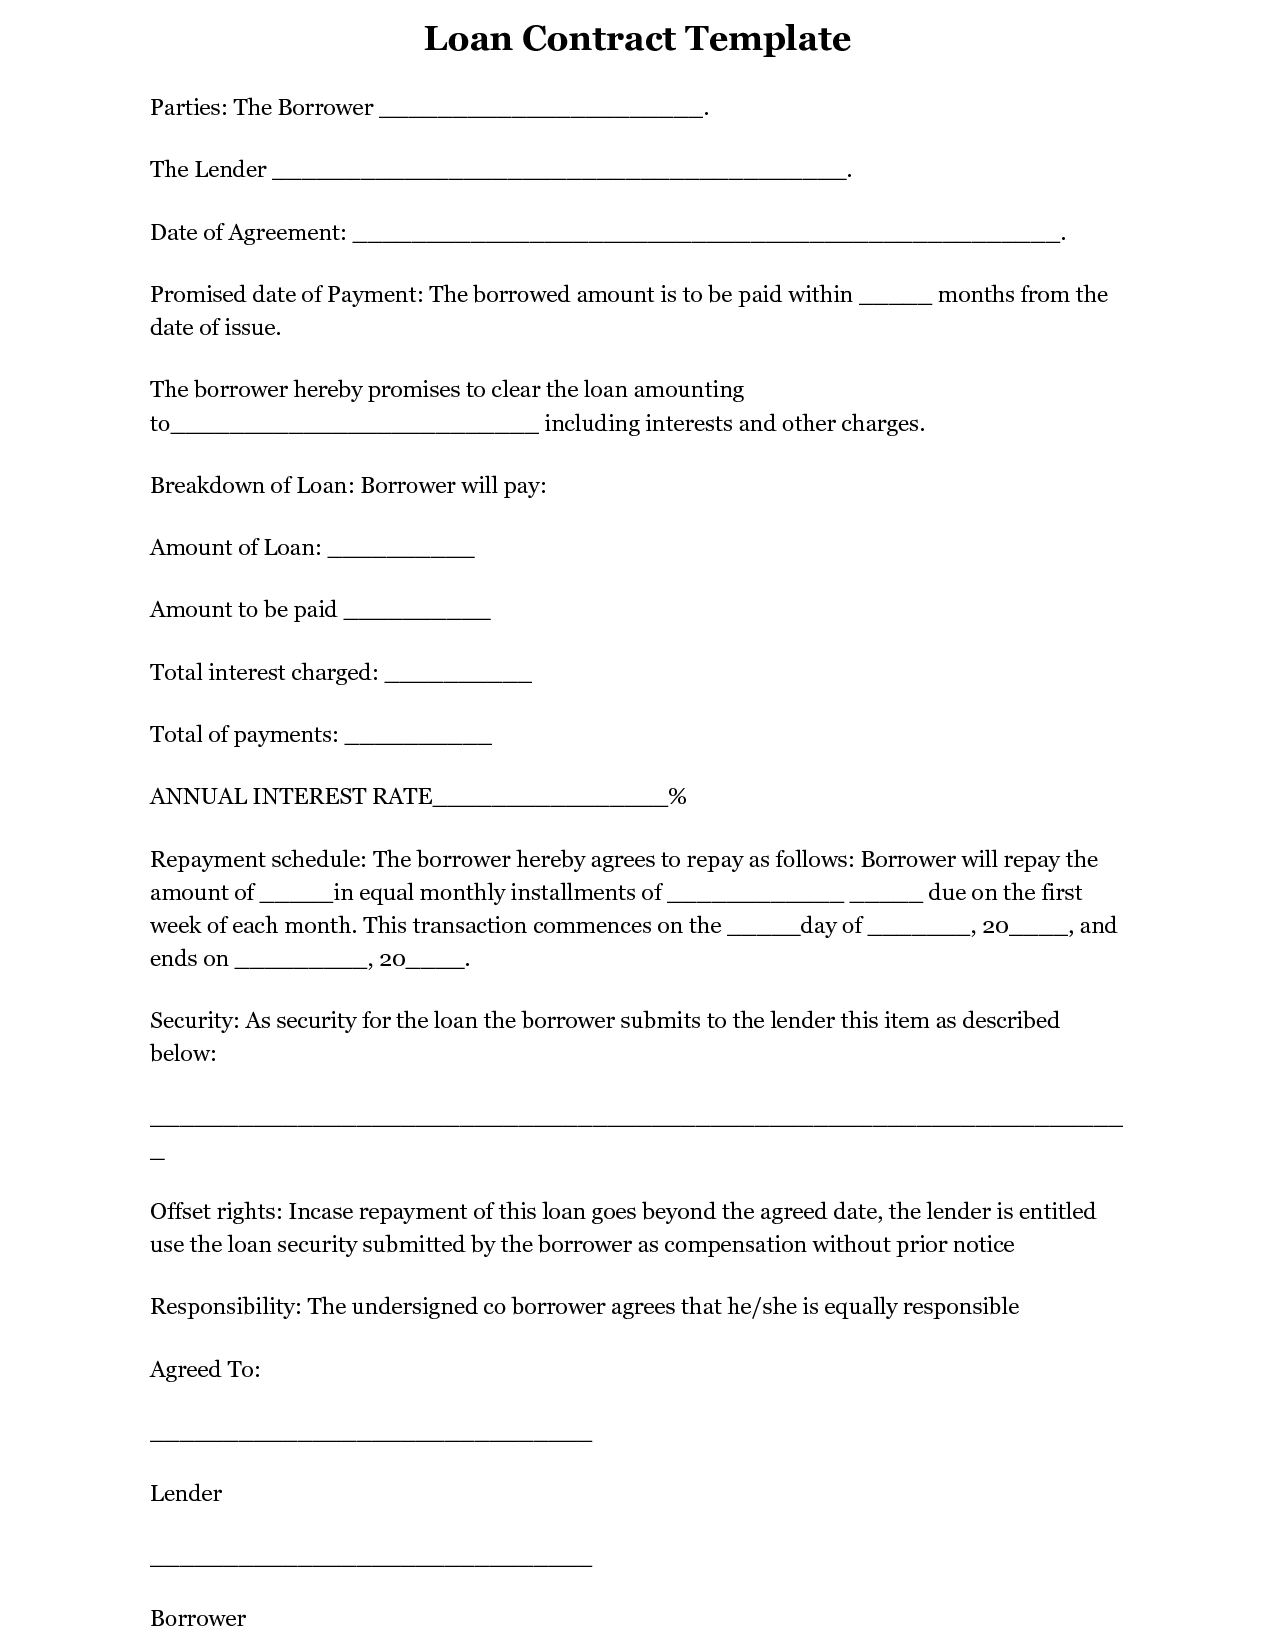 Simple Interest Loan Agreement Template | Koco Yhinoha   Simple Loan  Contract  Loan Document Template